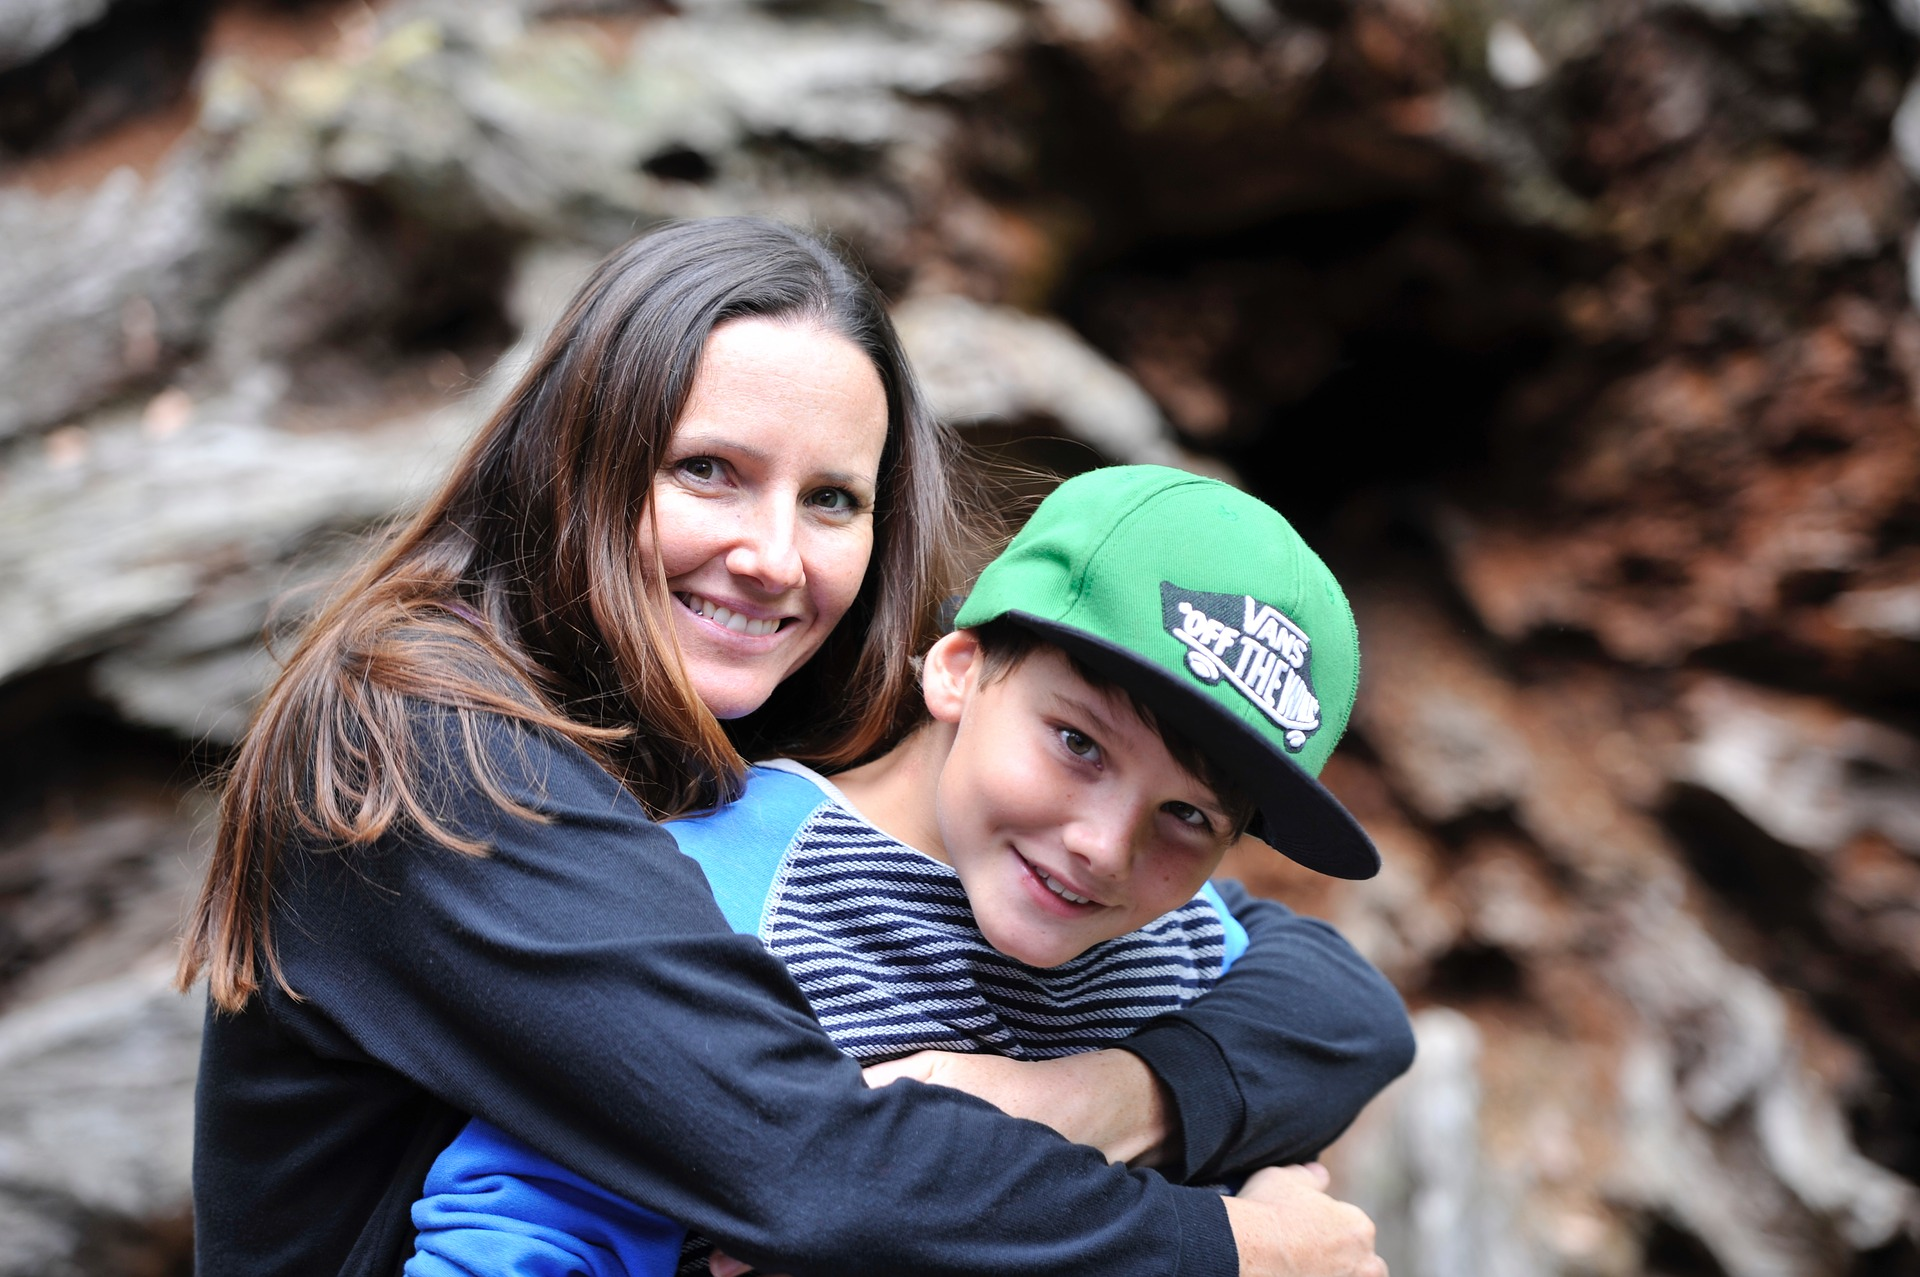 mother-and-son-2404328_1920